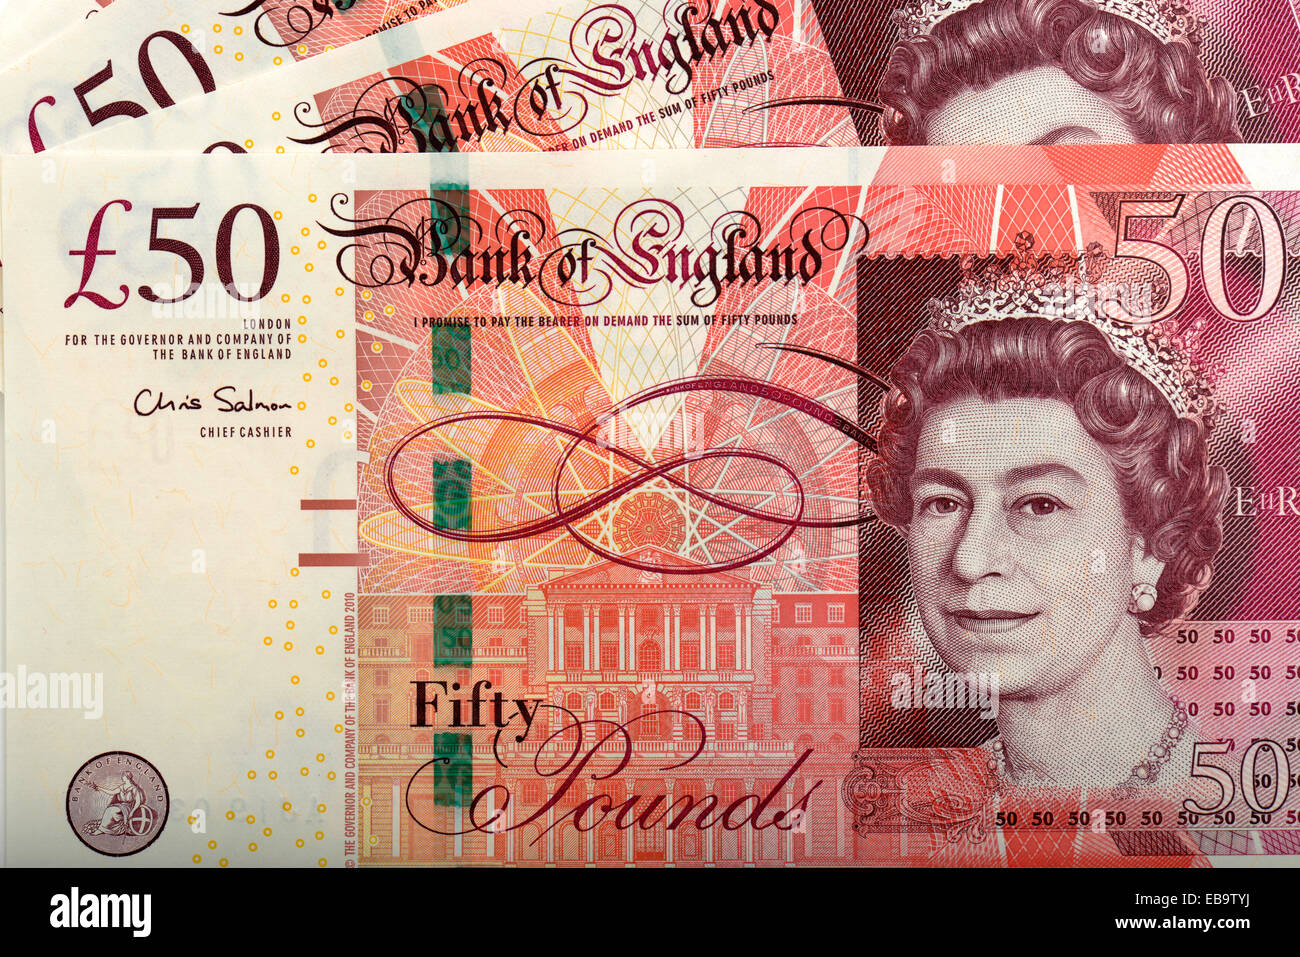 50 pounds sterling stock photos 50 pounds sterling stock images